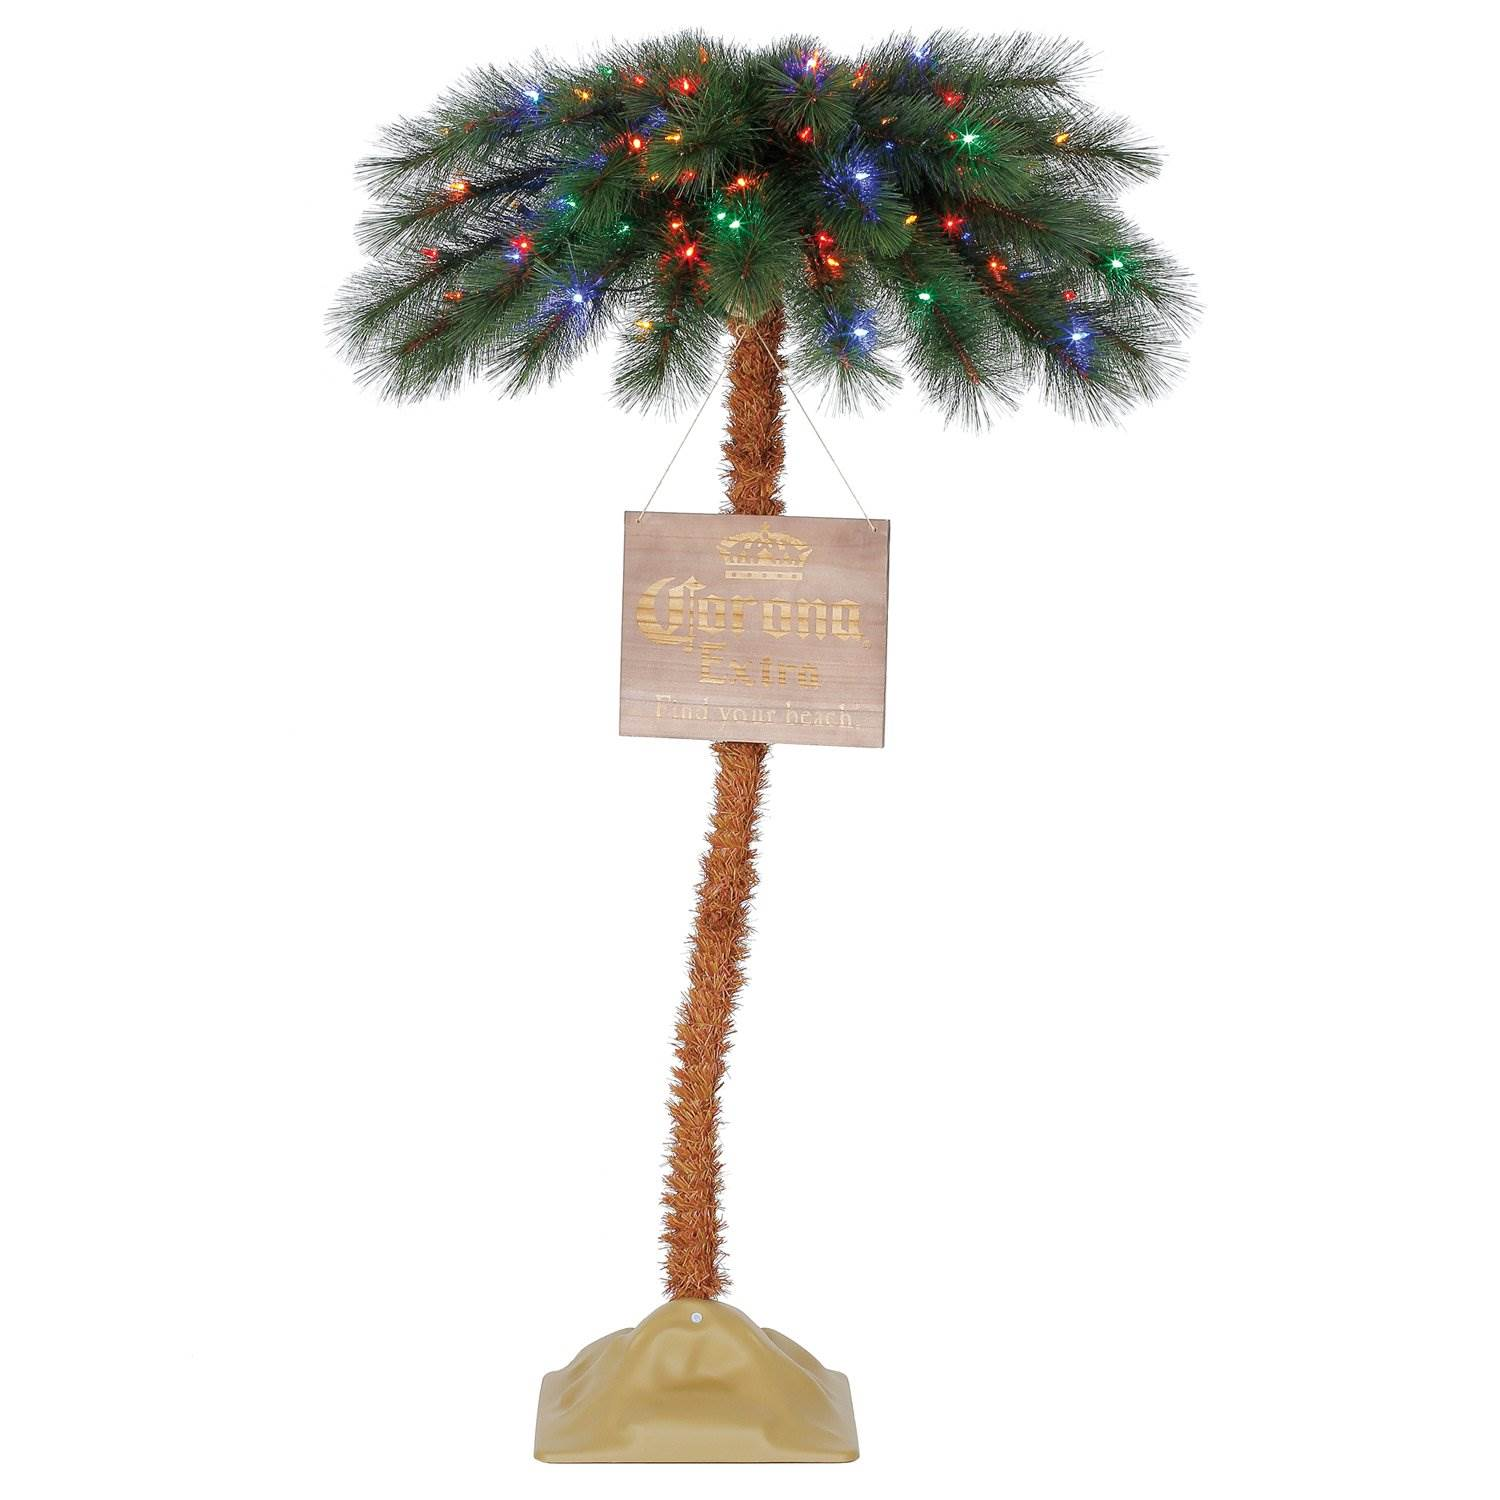 Commercial Outdoor Christmas Tree Lights: Corona 5 Foot Commercial Palm Tree LED Pre Lit Artificial